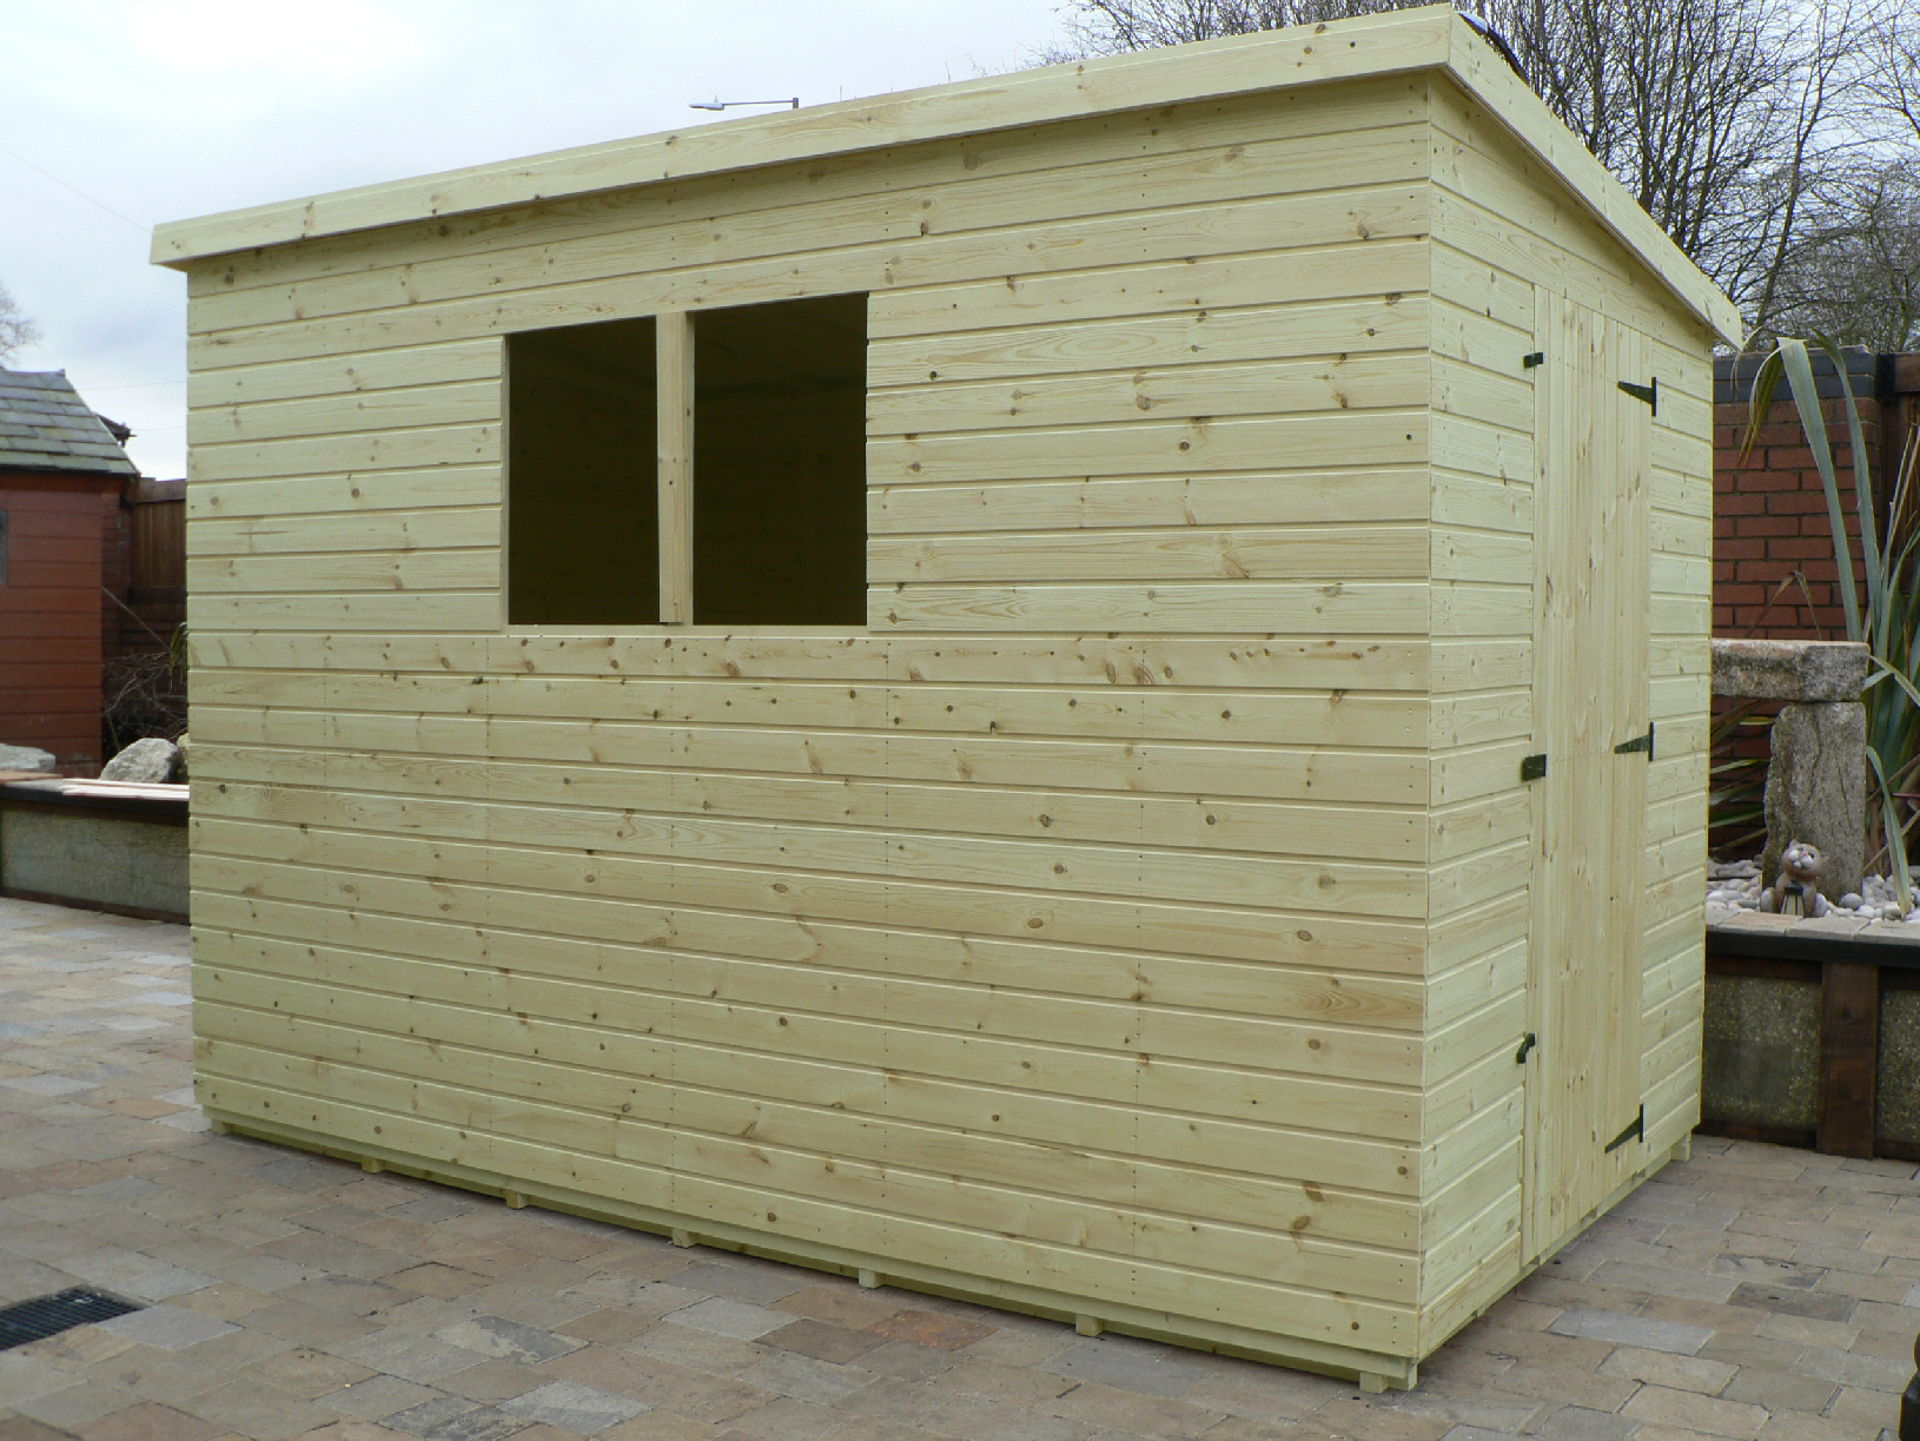 Sheds Manchester - Pressure Treated 10' x 6' Pent Shed . Door On The Right Gable End Panel